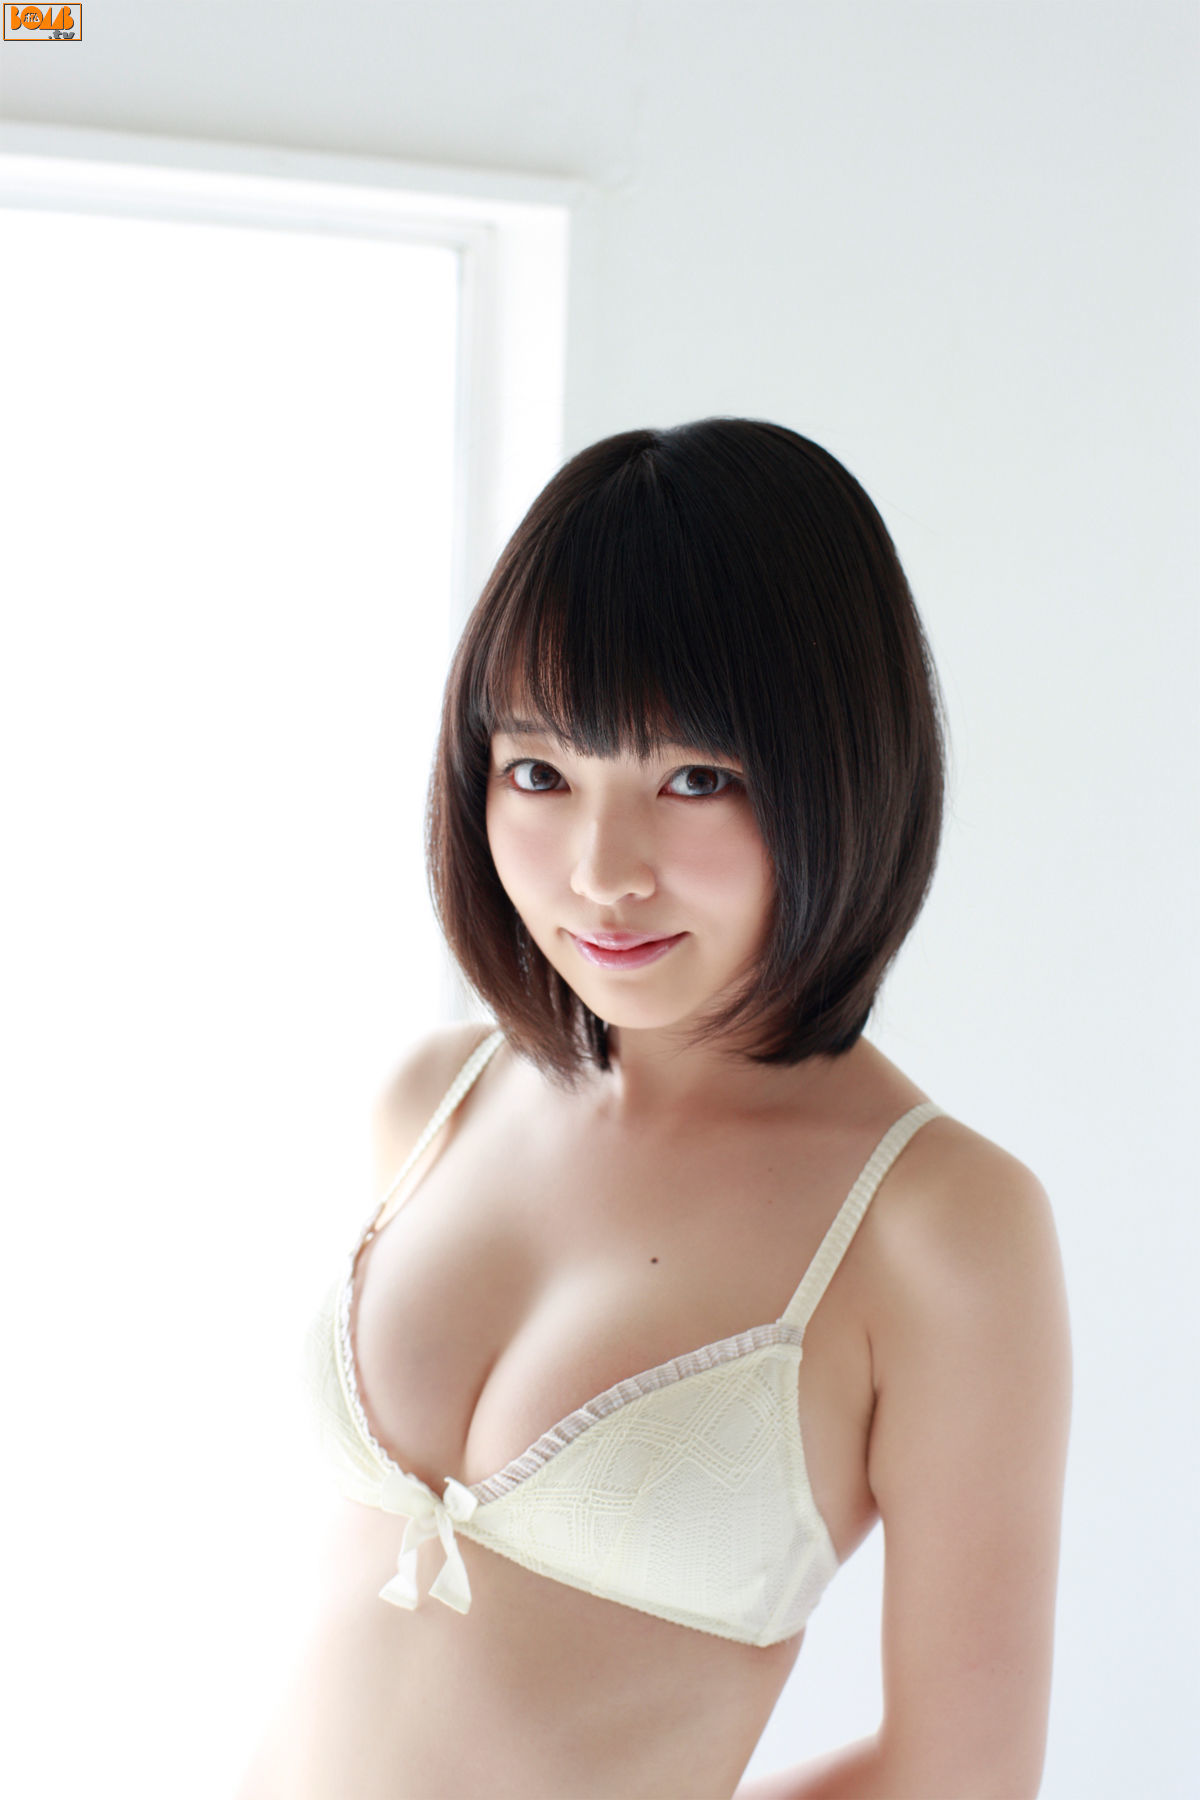 The ultimate swimsuit gravure for the next generation026